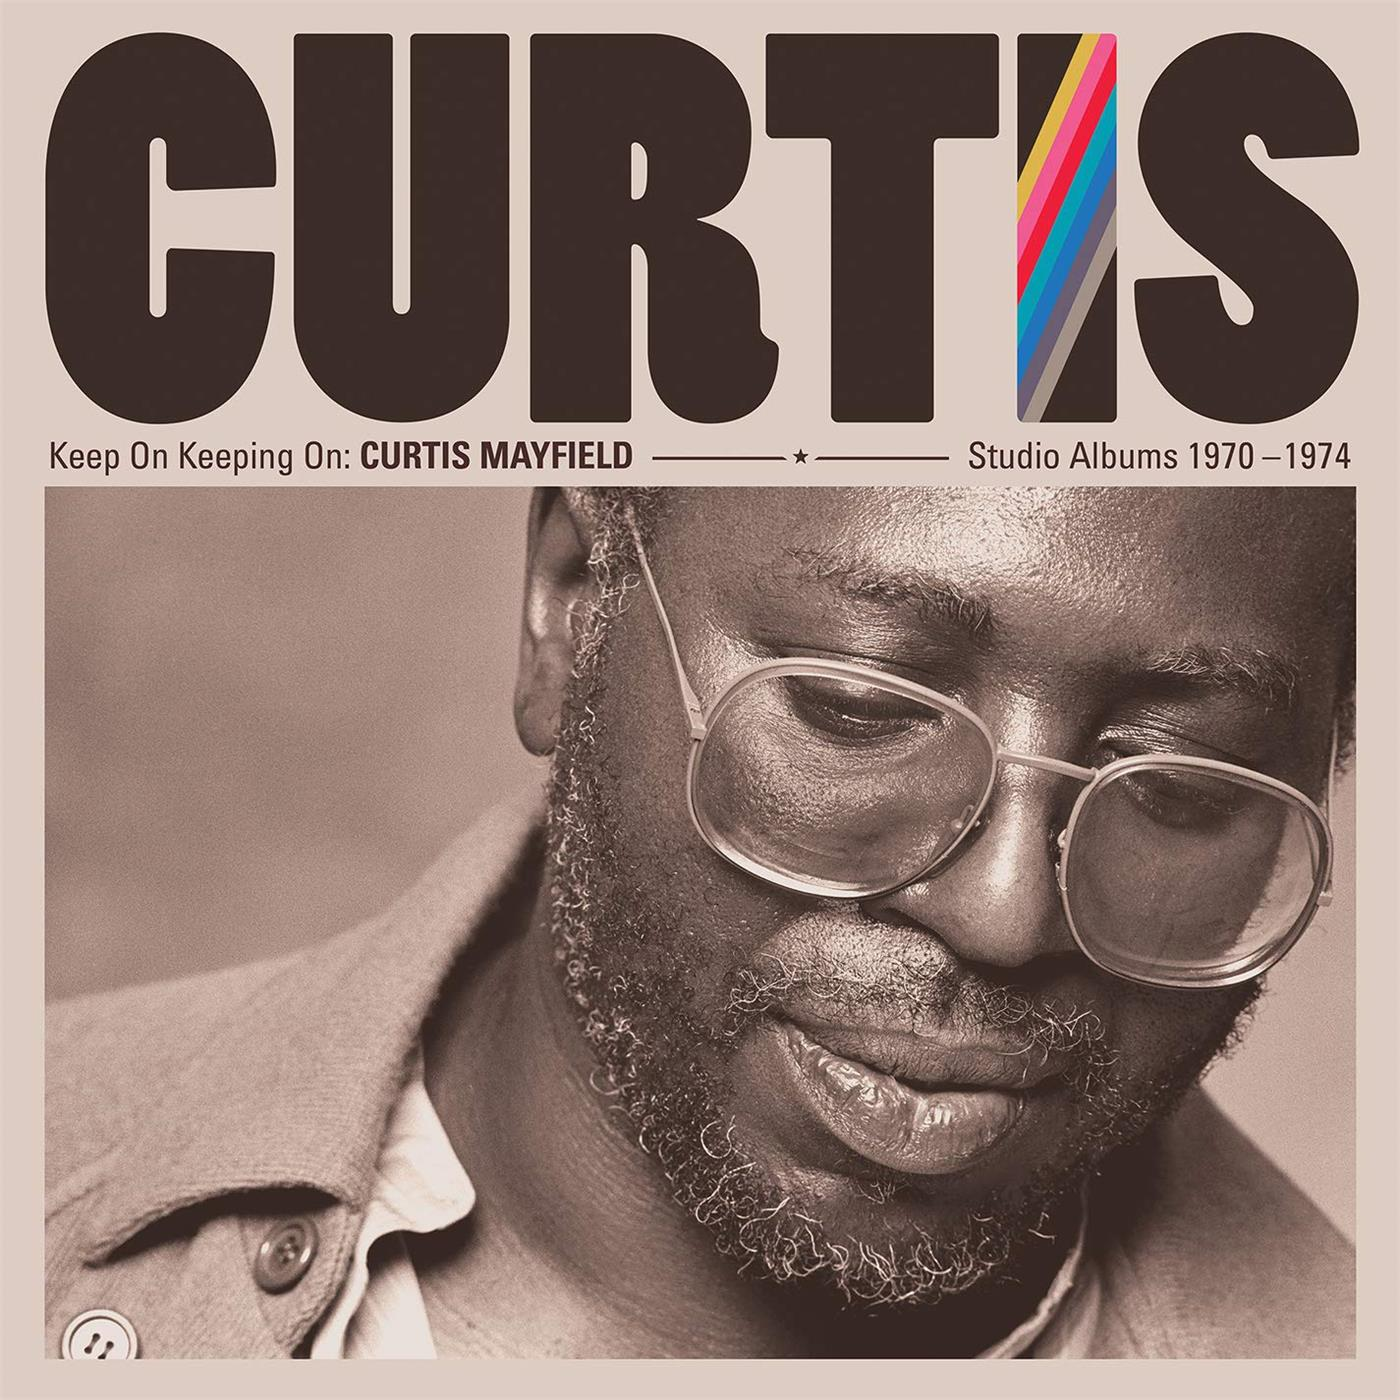 0603497855797 Rhino  Curtis Mayfield Keep On Keeping On: 1970-1974 (4LP)